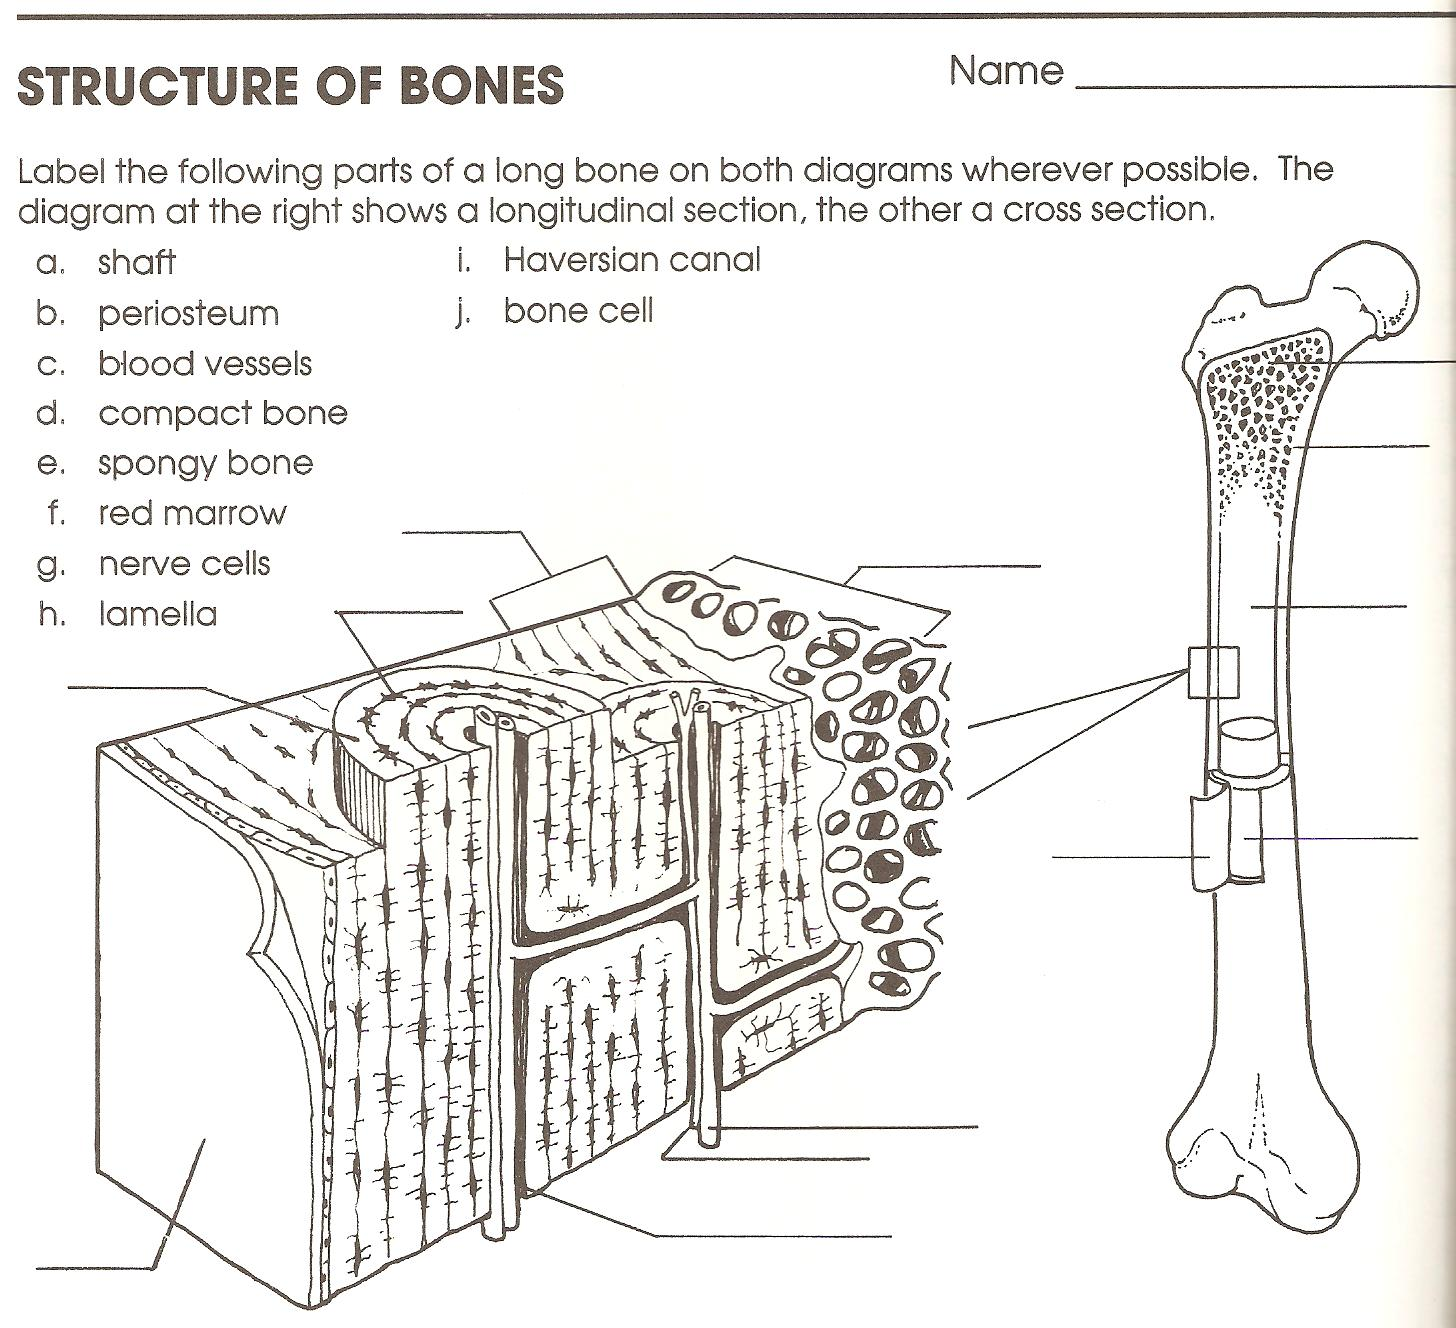 bones worksheet Termolak – Bones Worksheet